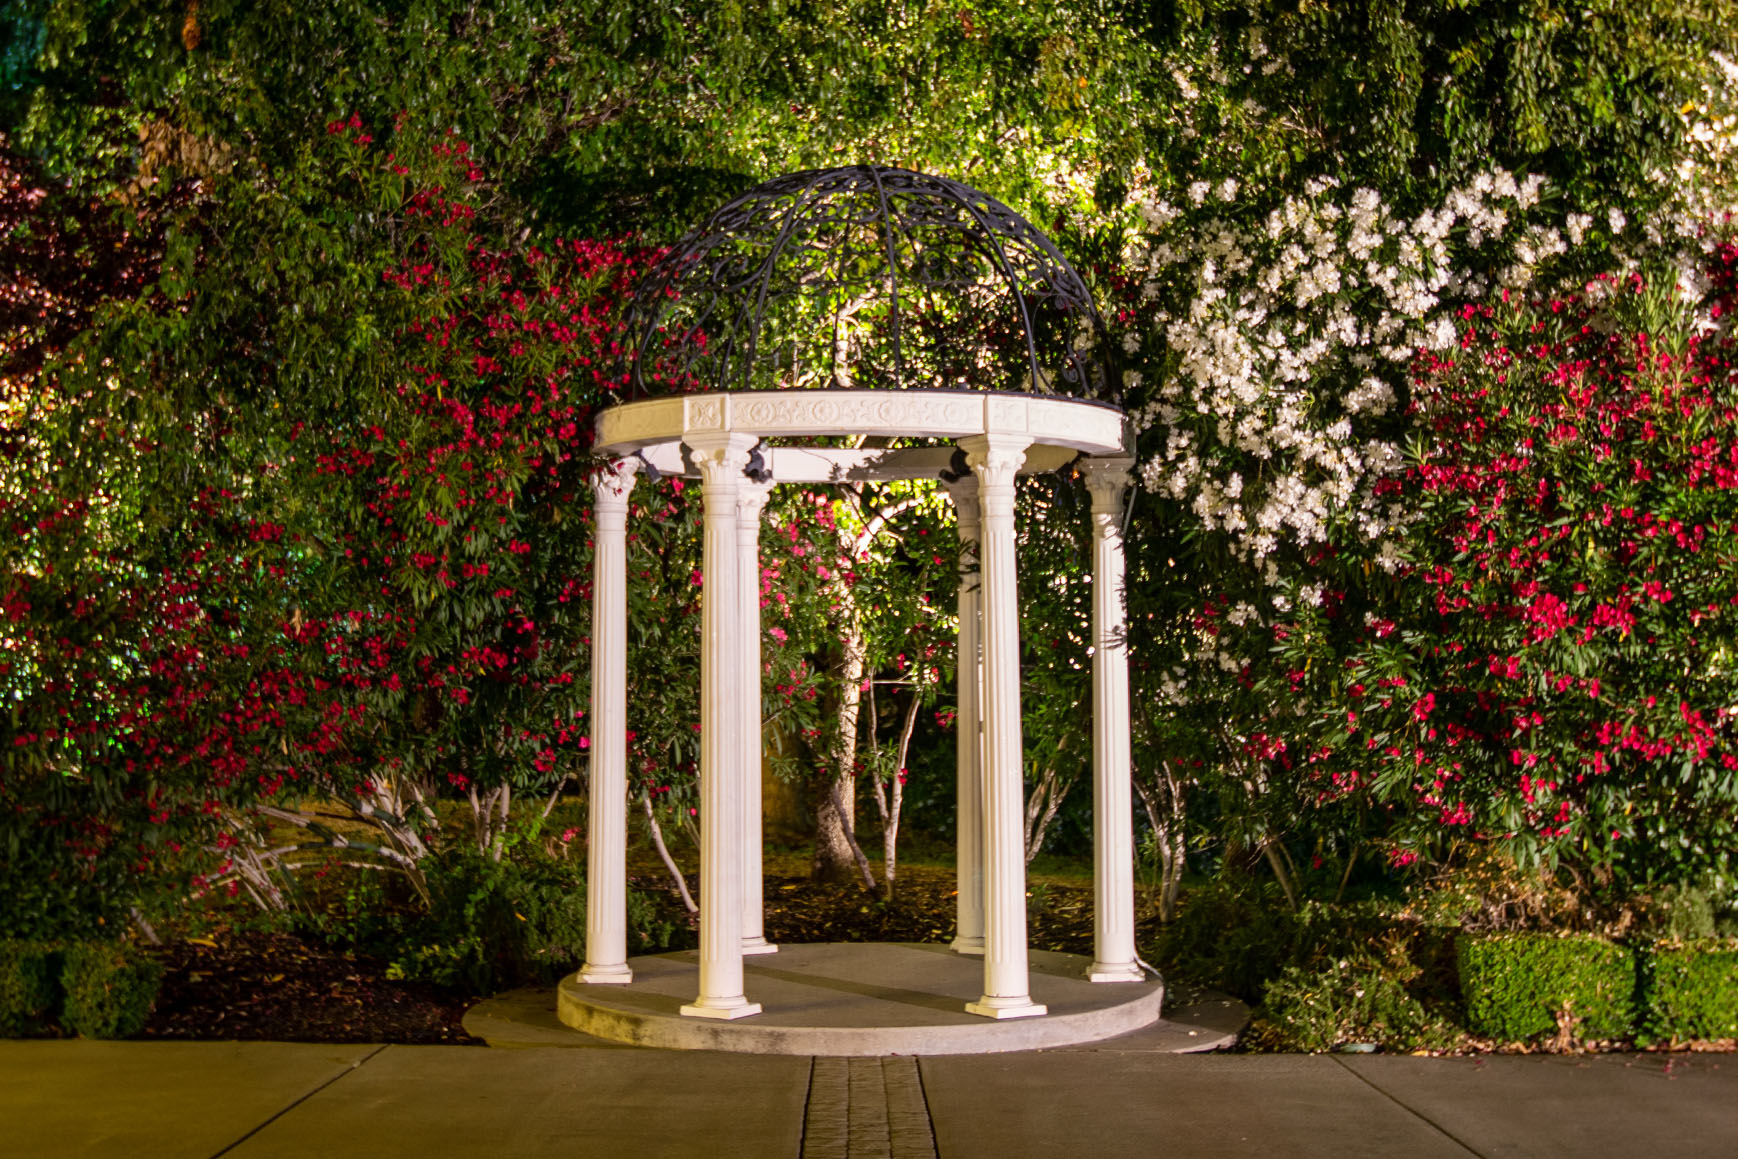 Garden Site at Night - Brentwood - Brentwood, California - Contra Costa County - Wedgewood Weddings